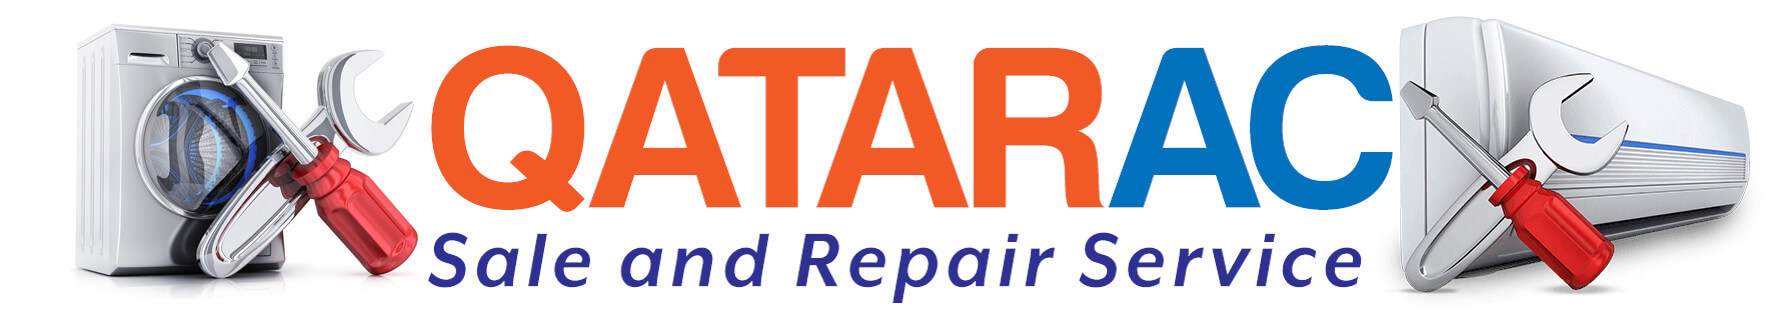 Qatar AC Sale and Repair Service